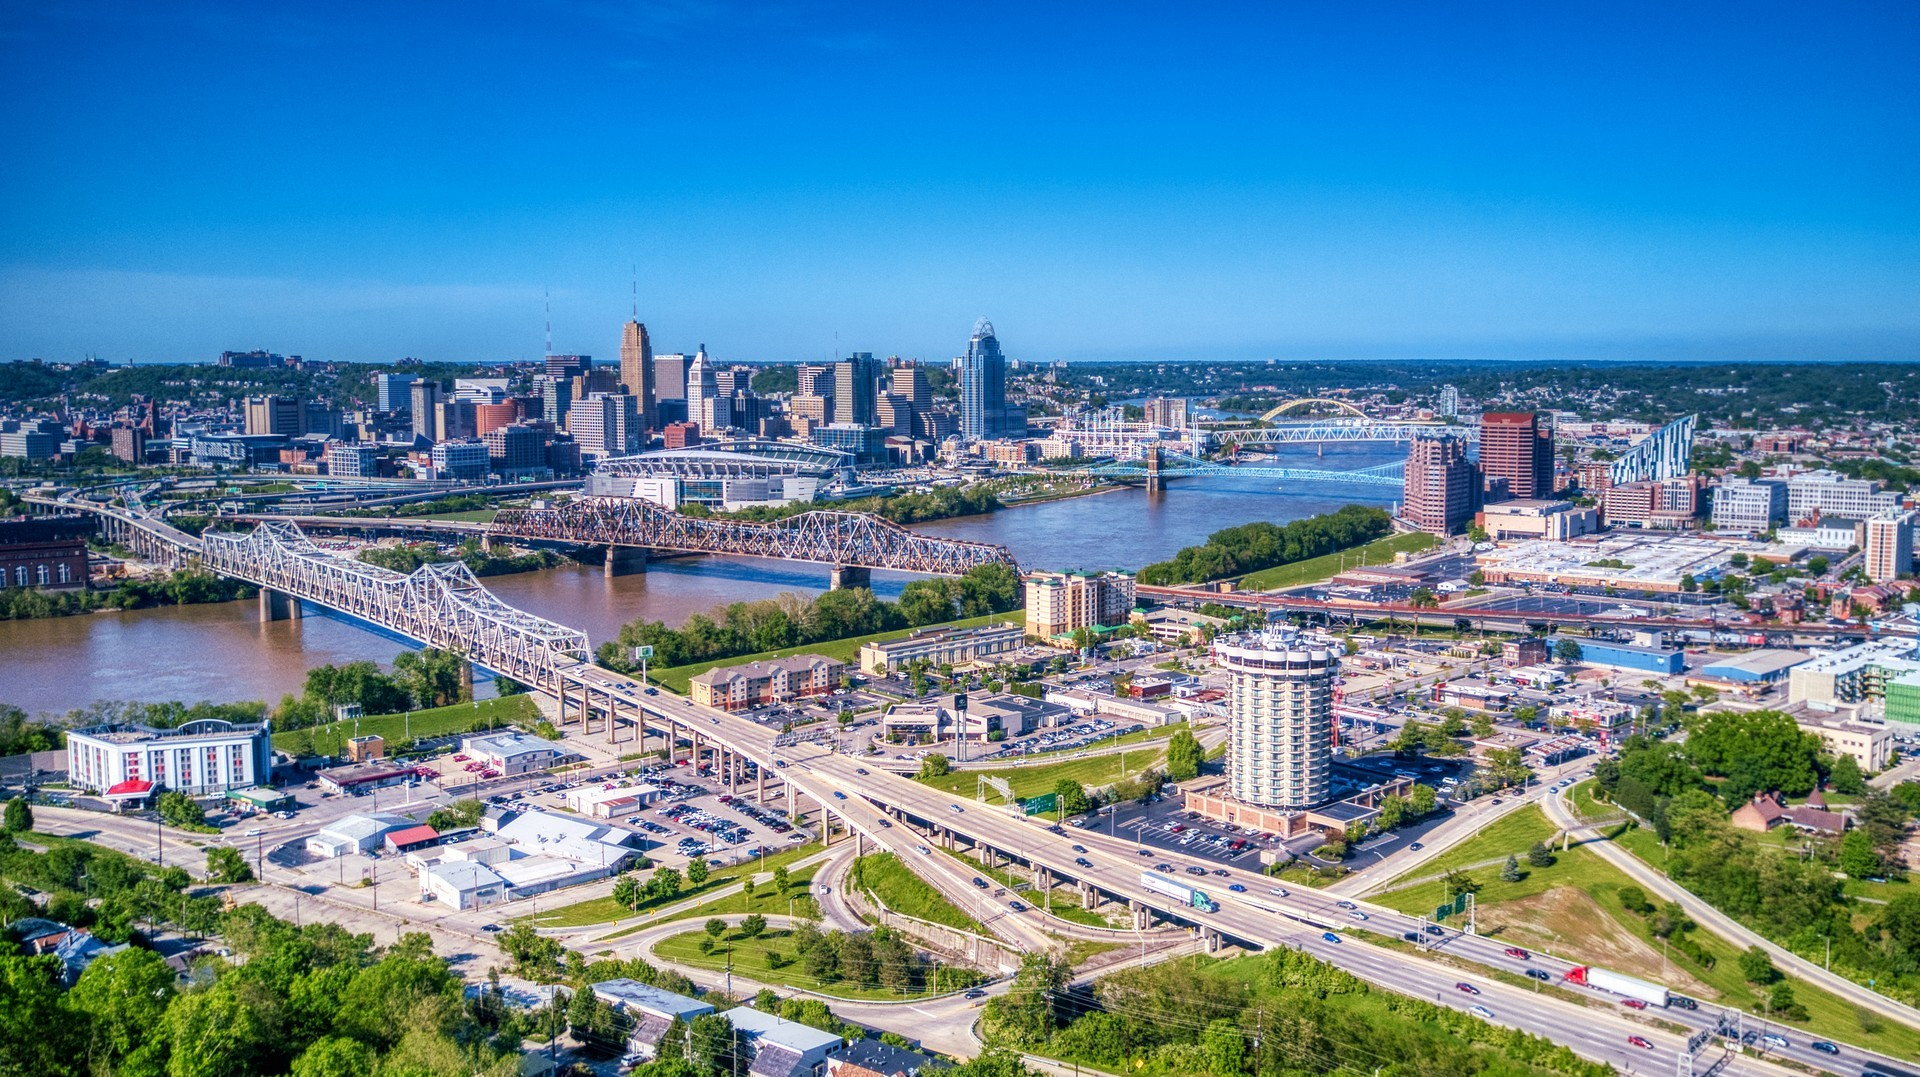 Covington, KY Private Jet and Air Charter Flights